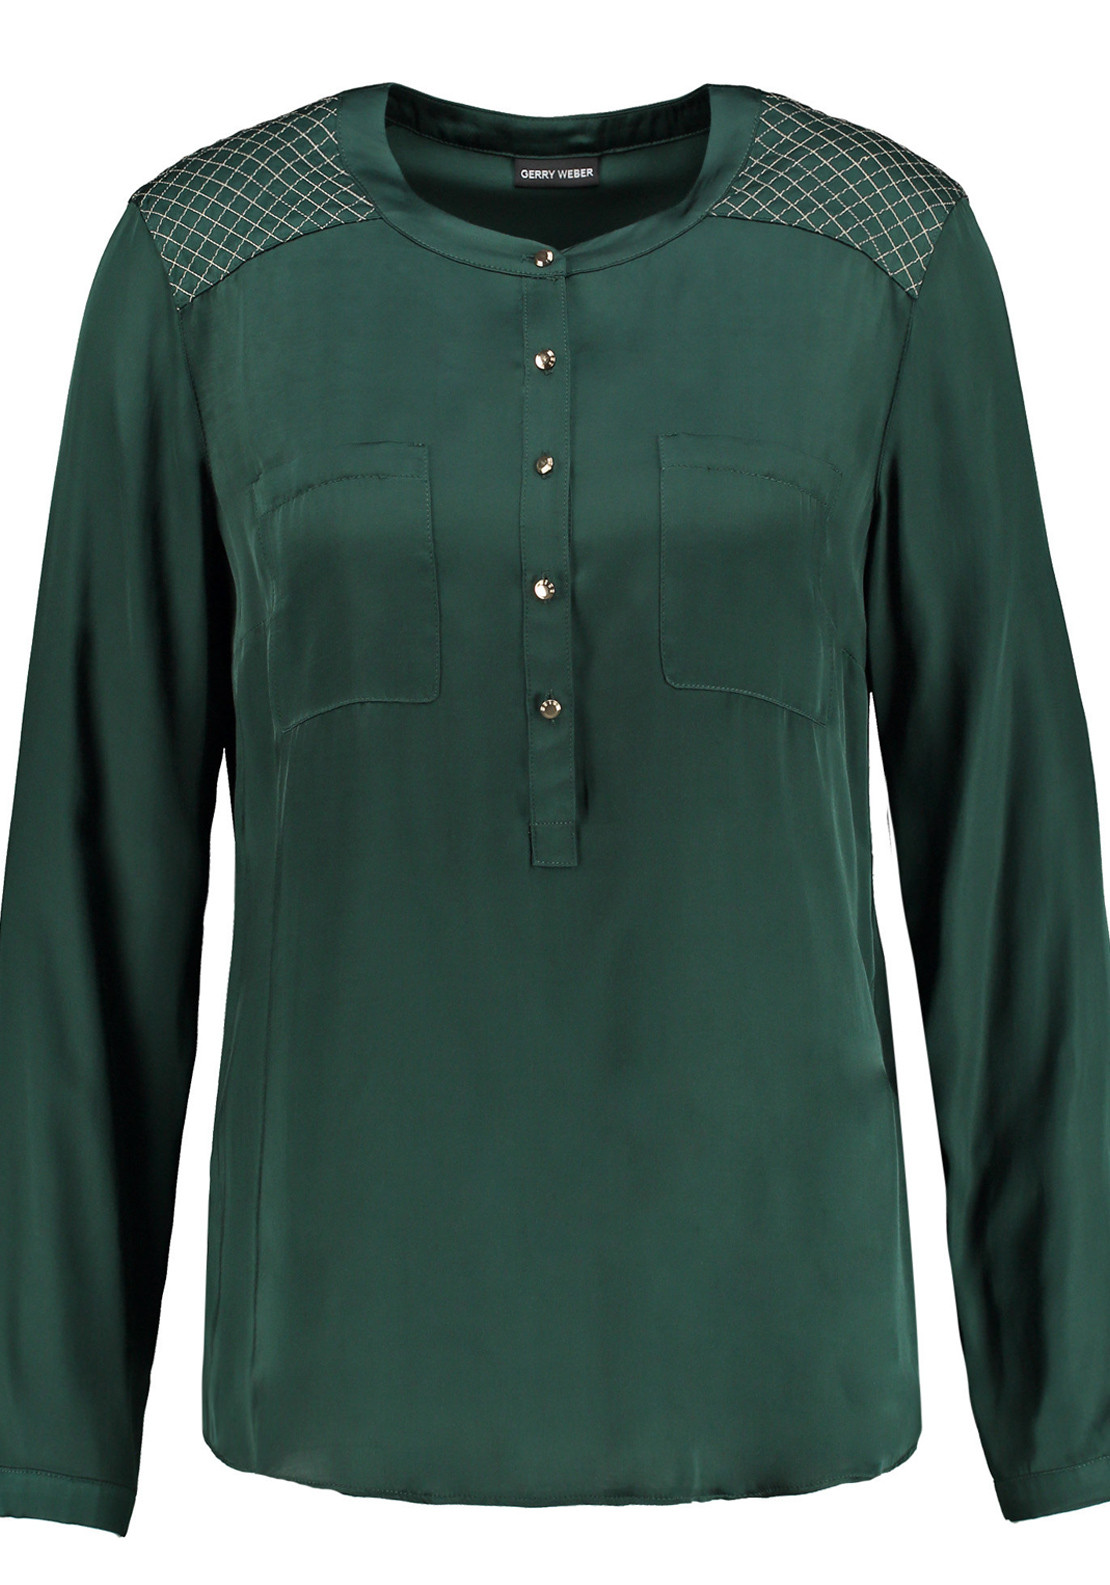 Gerry Weber Tunic Style Long Sleeve Blouse, Forest Green